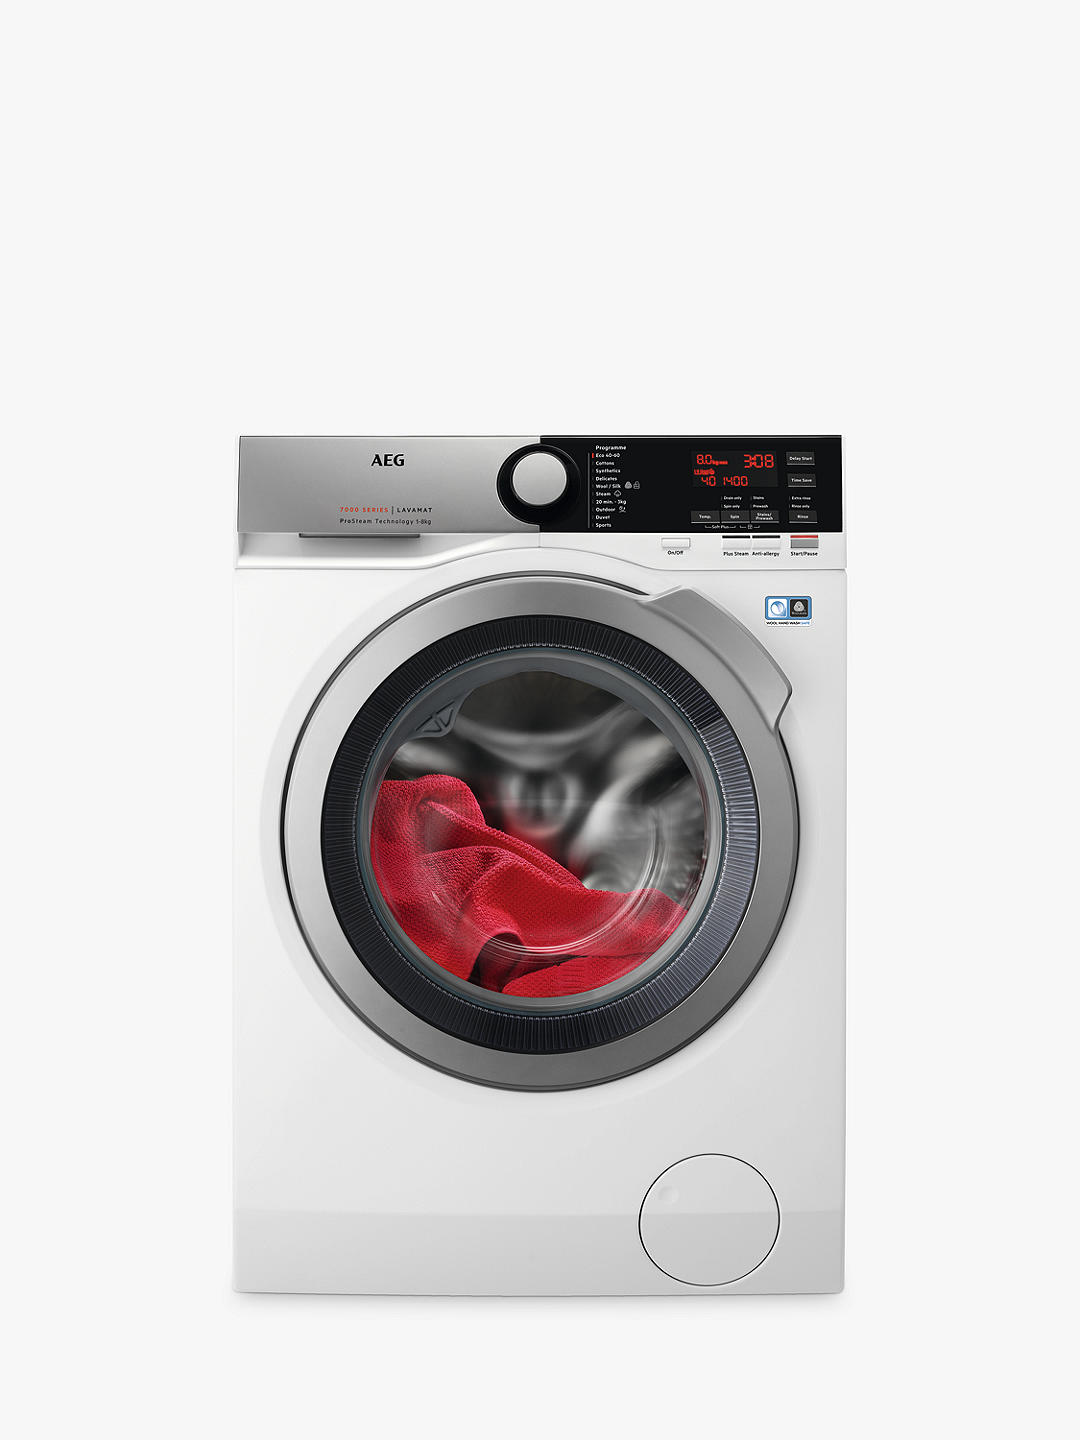 Buy AEG 7000 L7FEE865R Freestanding Washing Machine, 8kg Load, 1600rpm Spin, White Online at johnlewis.com